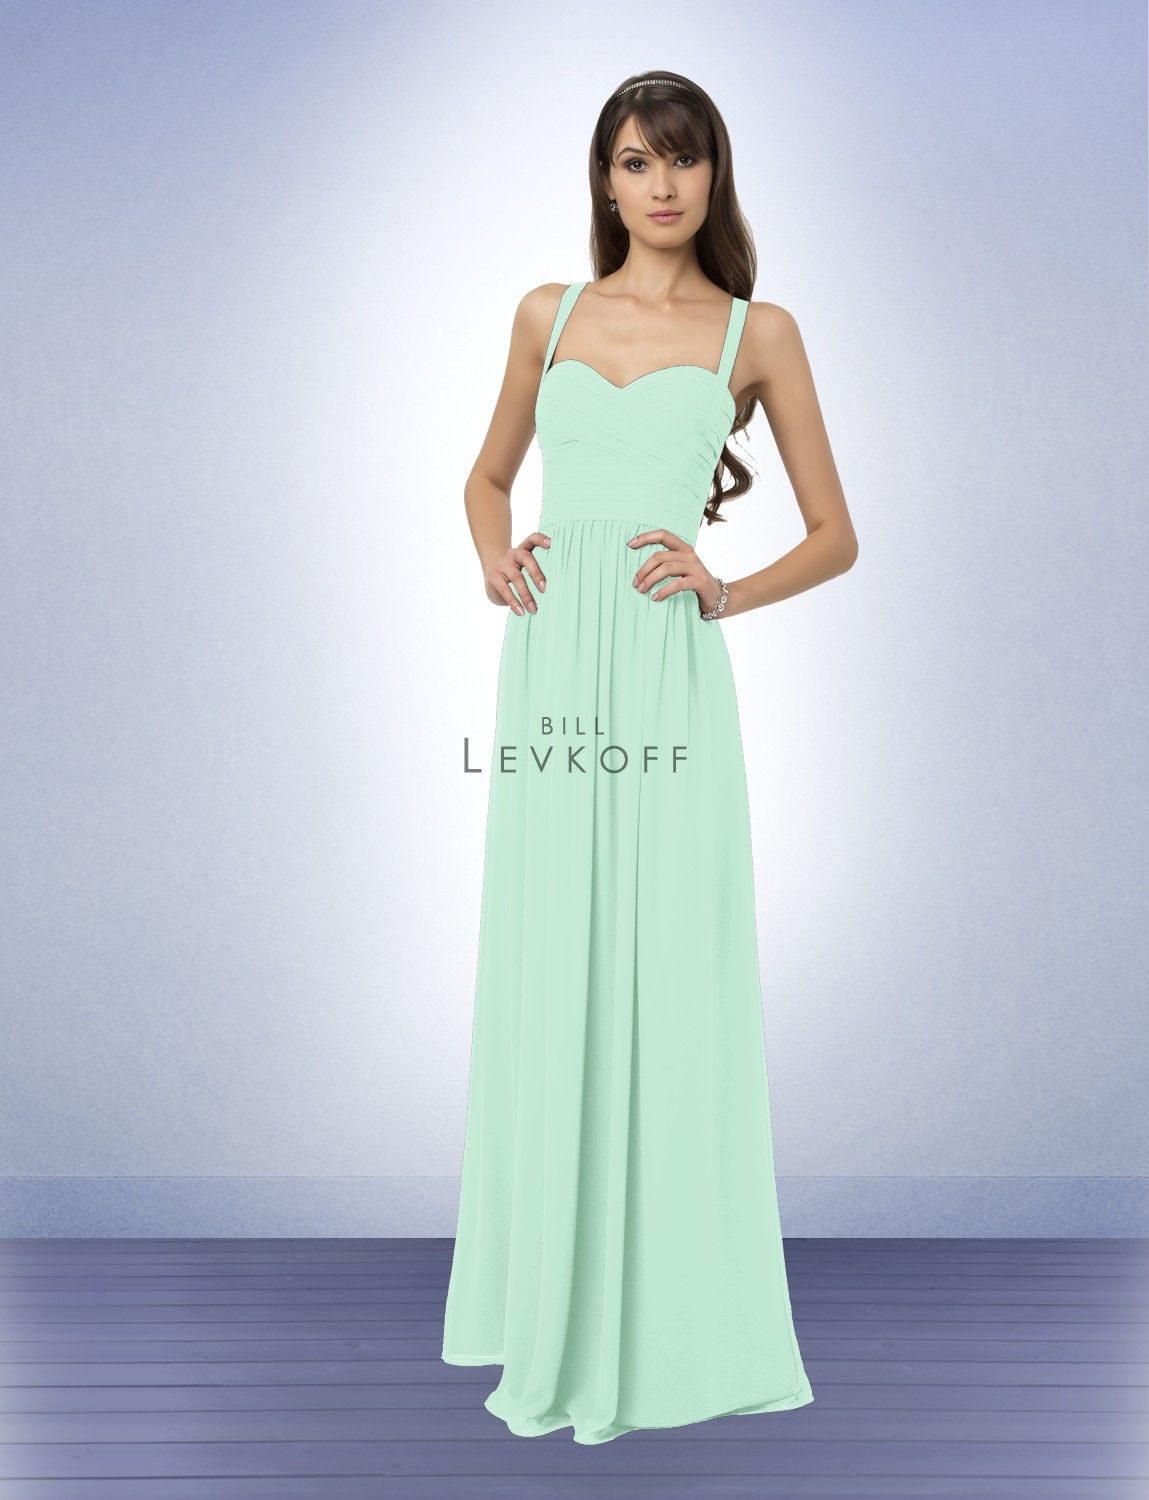 Bridesmaid dress style 769 bridesmaid dresses by bill levkoff chiffon gown with a soft sweetheart neckline ruched criss cross bodice with straps that form a v in the back soft gathers give the skirt fullness and ombrellifo Images